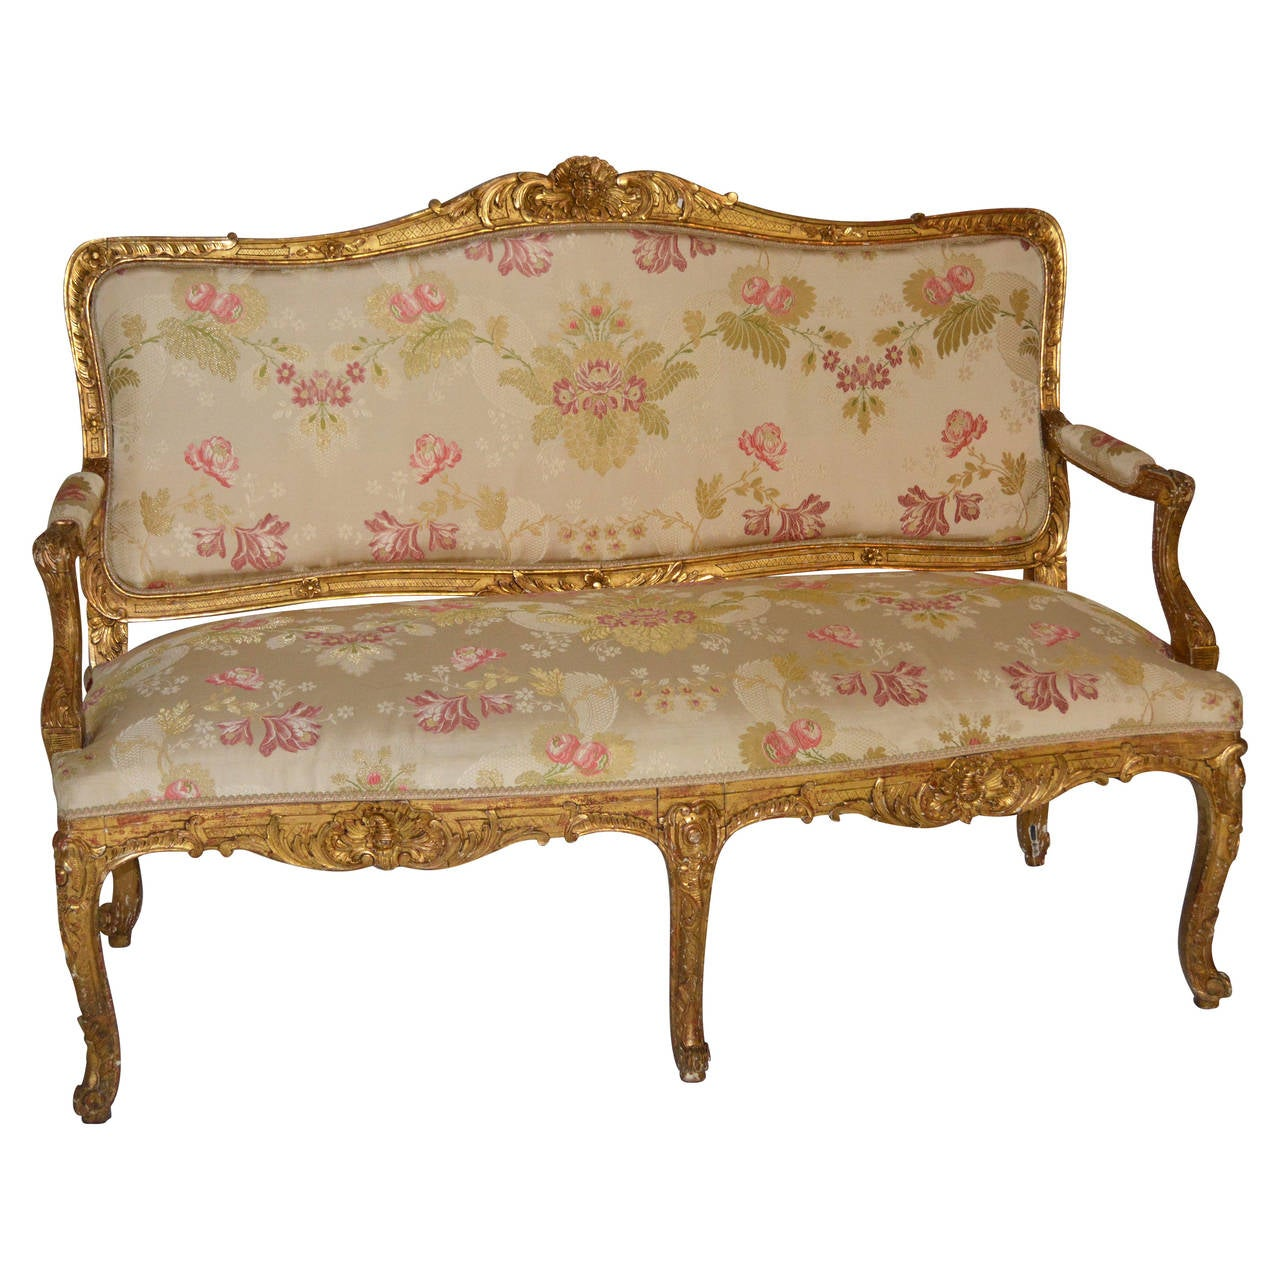 Louis XV Style Giltwood Antique Settee, 19th Century